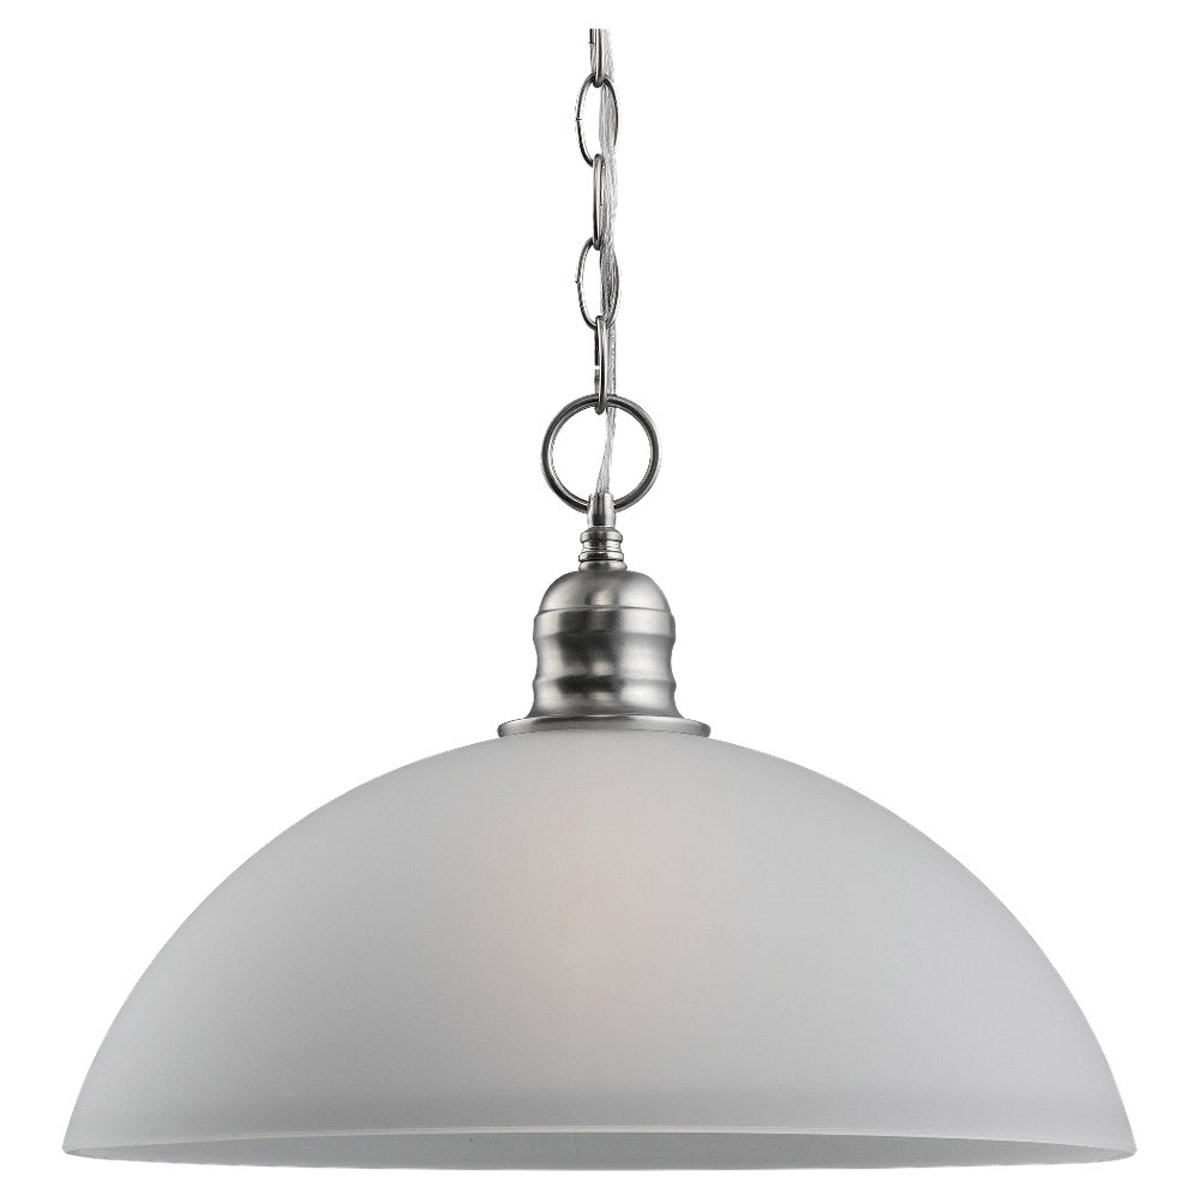 Sea Gull Lighting Linwood 1 Light Pendant in Brushed Nickel 65225-962